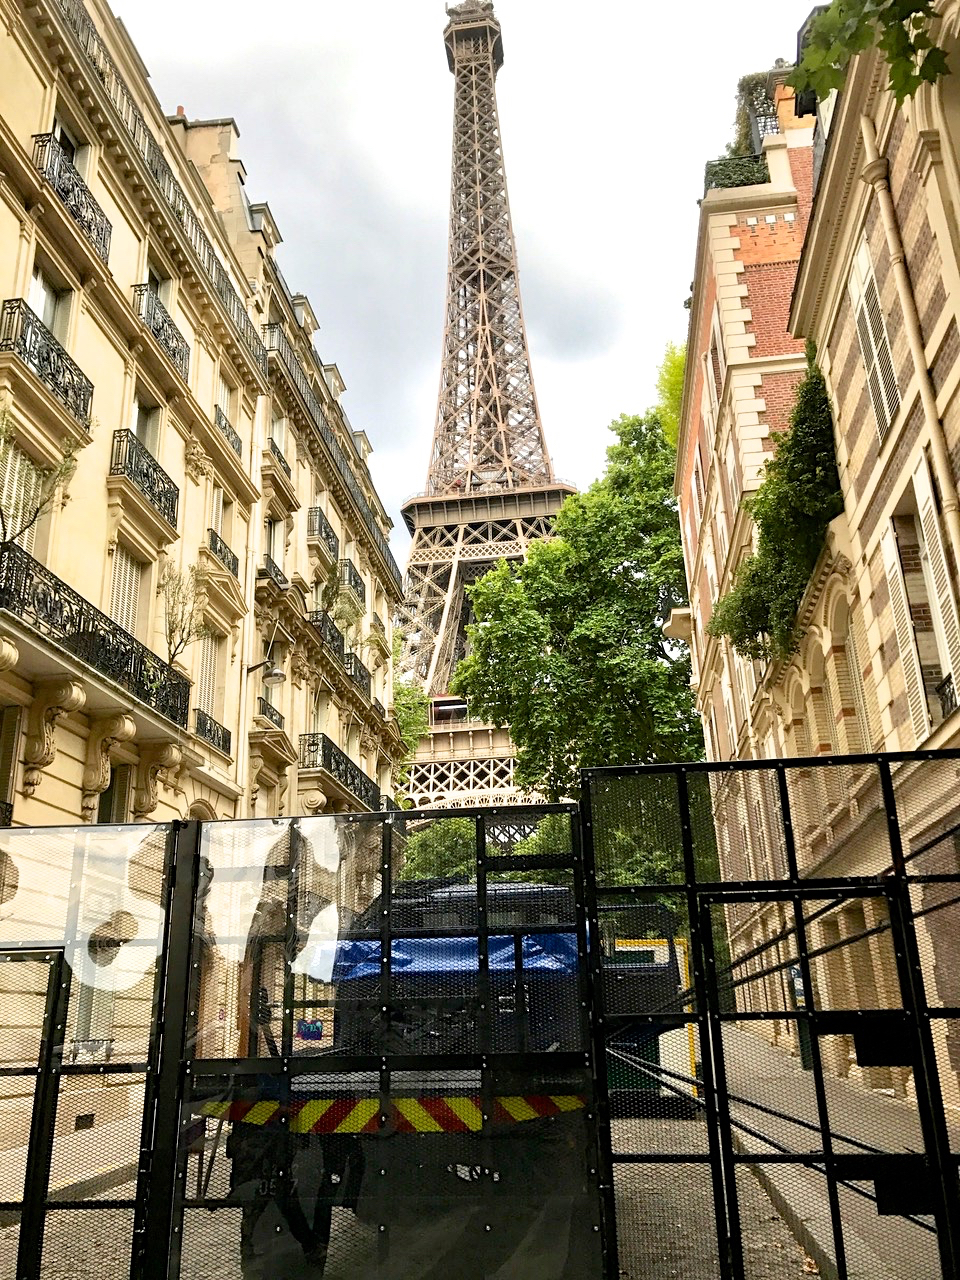 Eiffel Tower Closed for Trump Visit (image courtesy of Lisa Michaux)